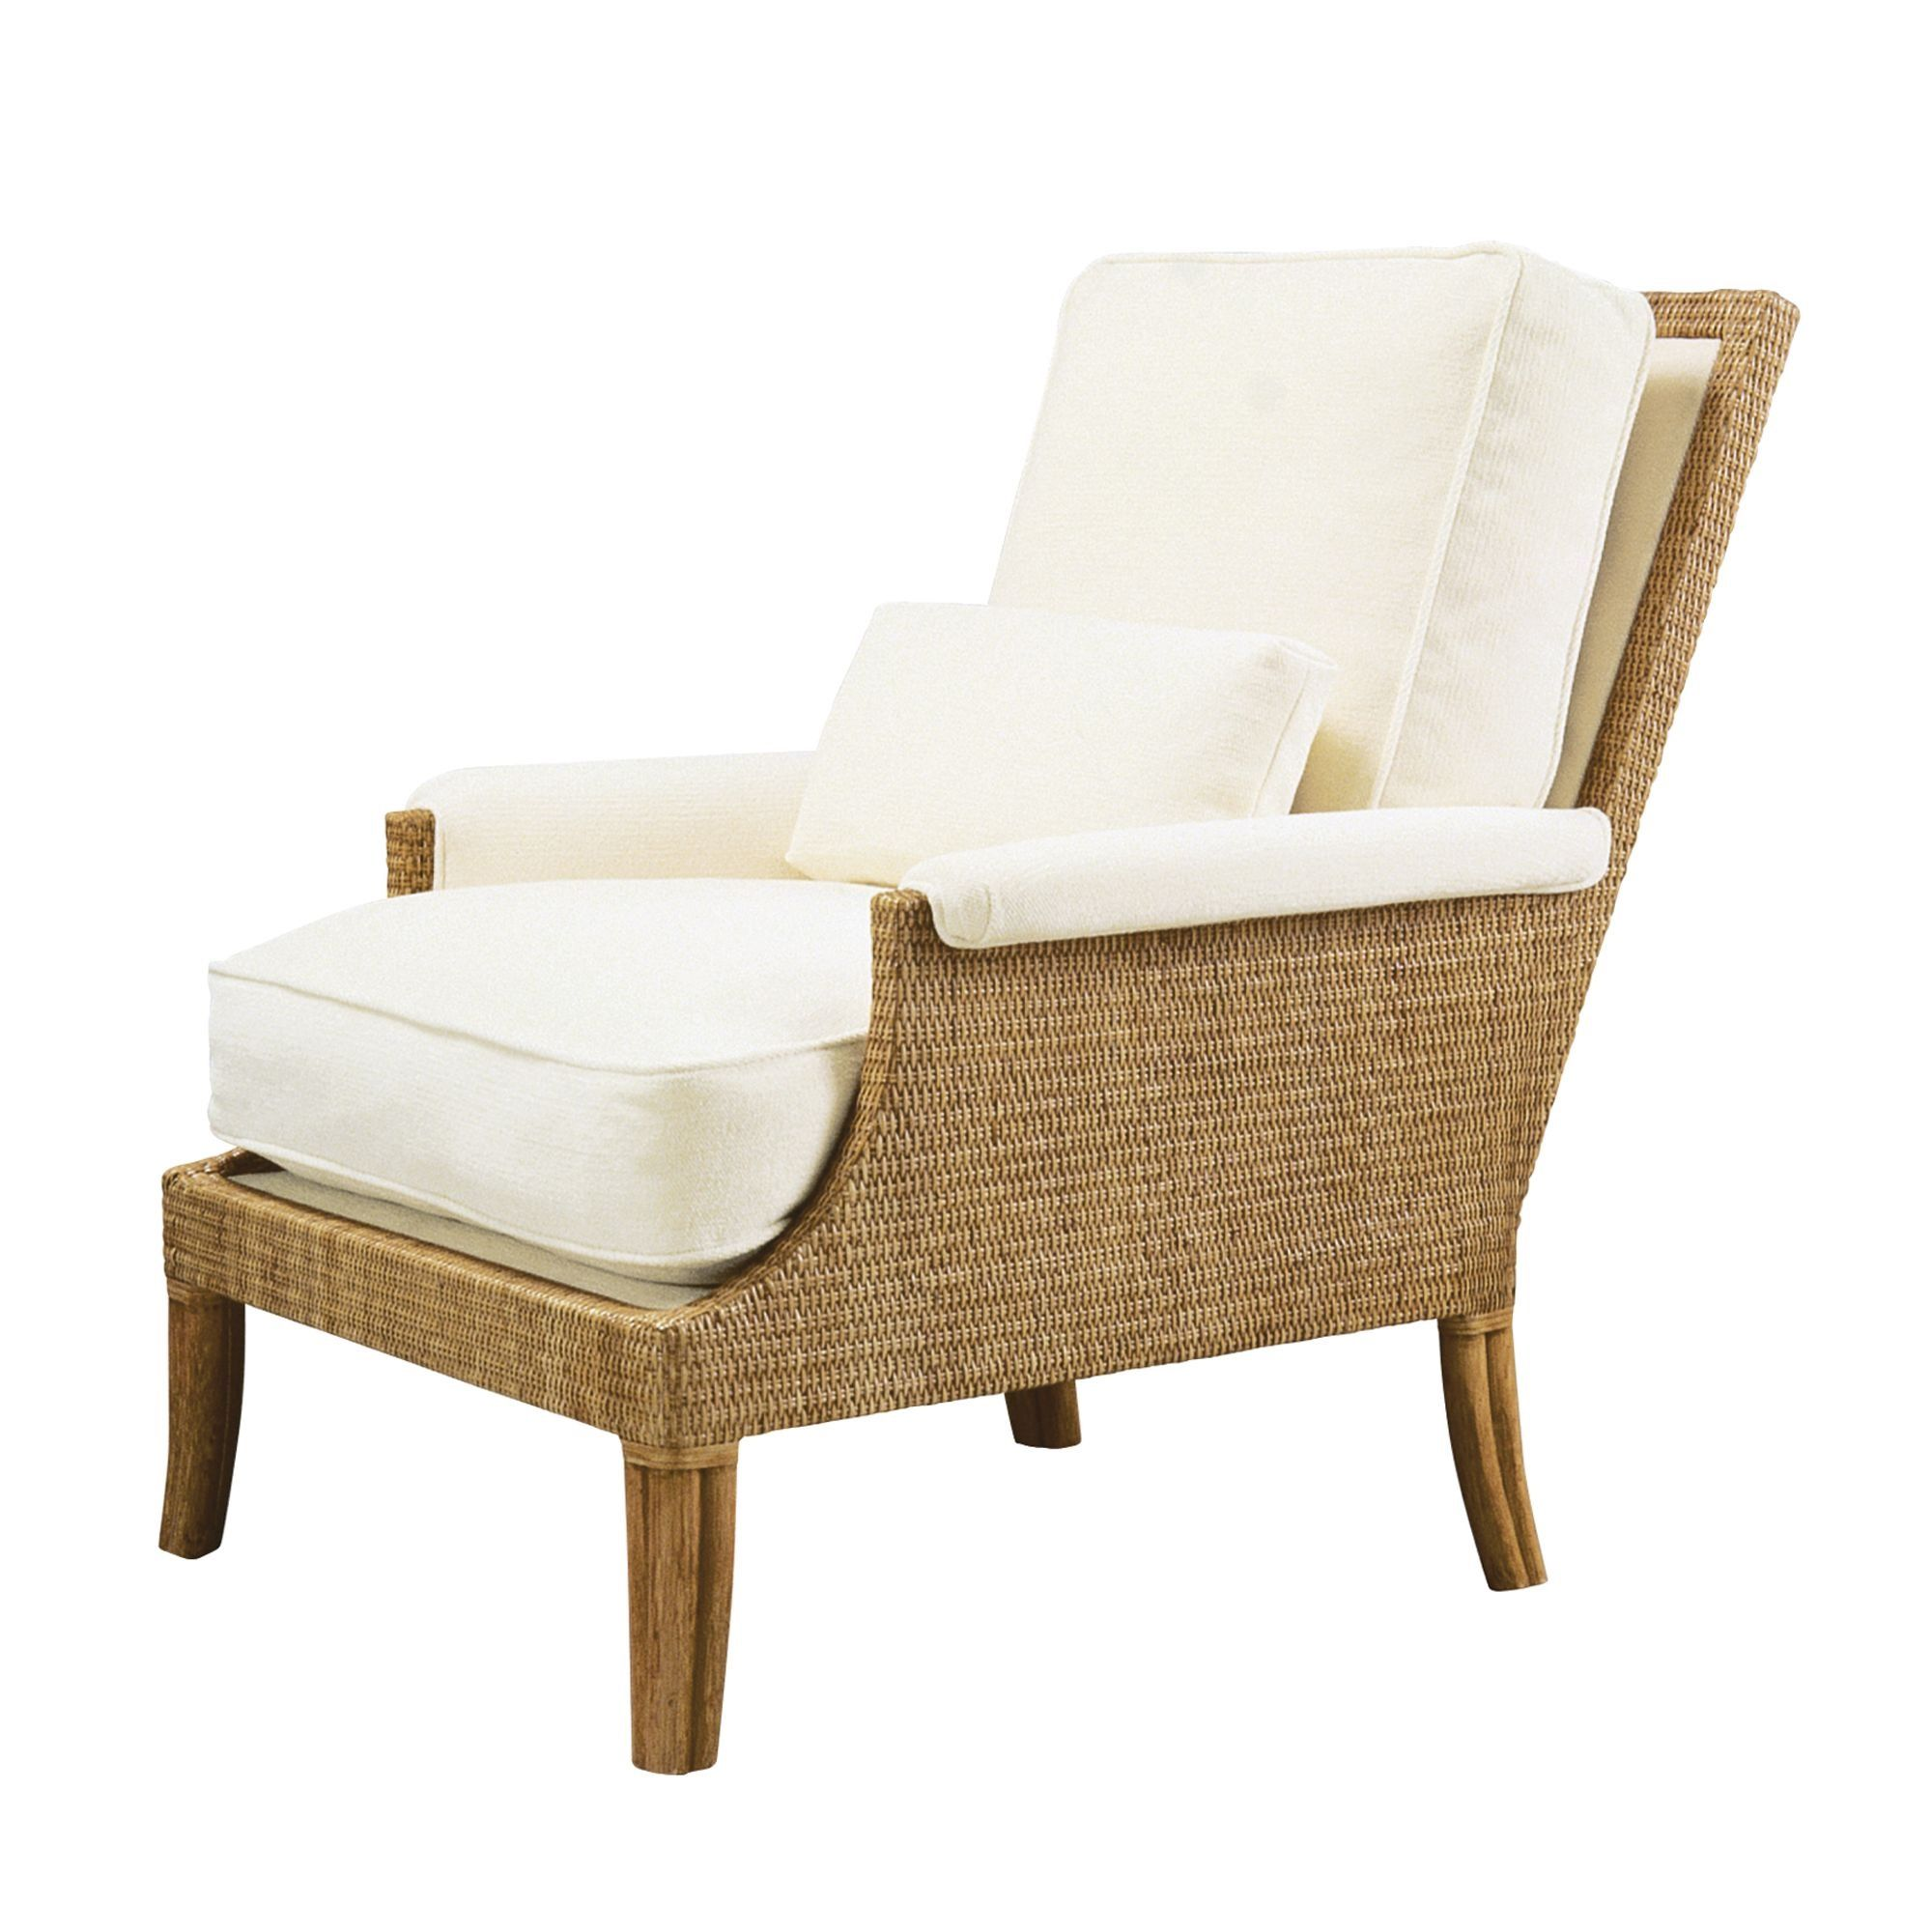 mcguire furniture company. Buy Orlando Diaz-Azcuy Umbria Lounge Chair By McGuire Furniture - Quick Ship Designer Mcguire Company A